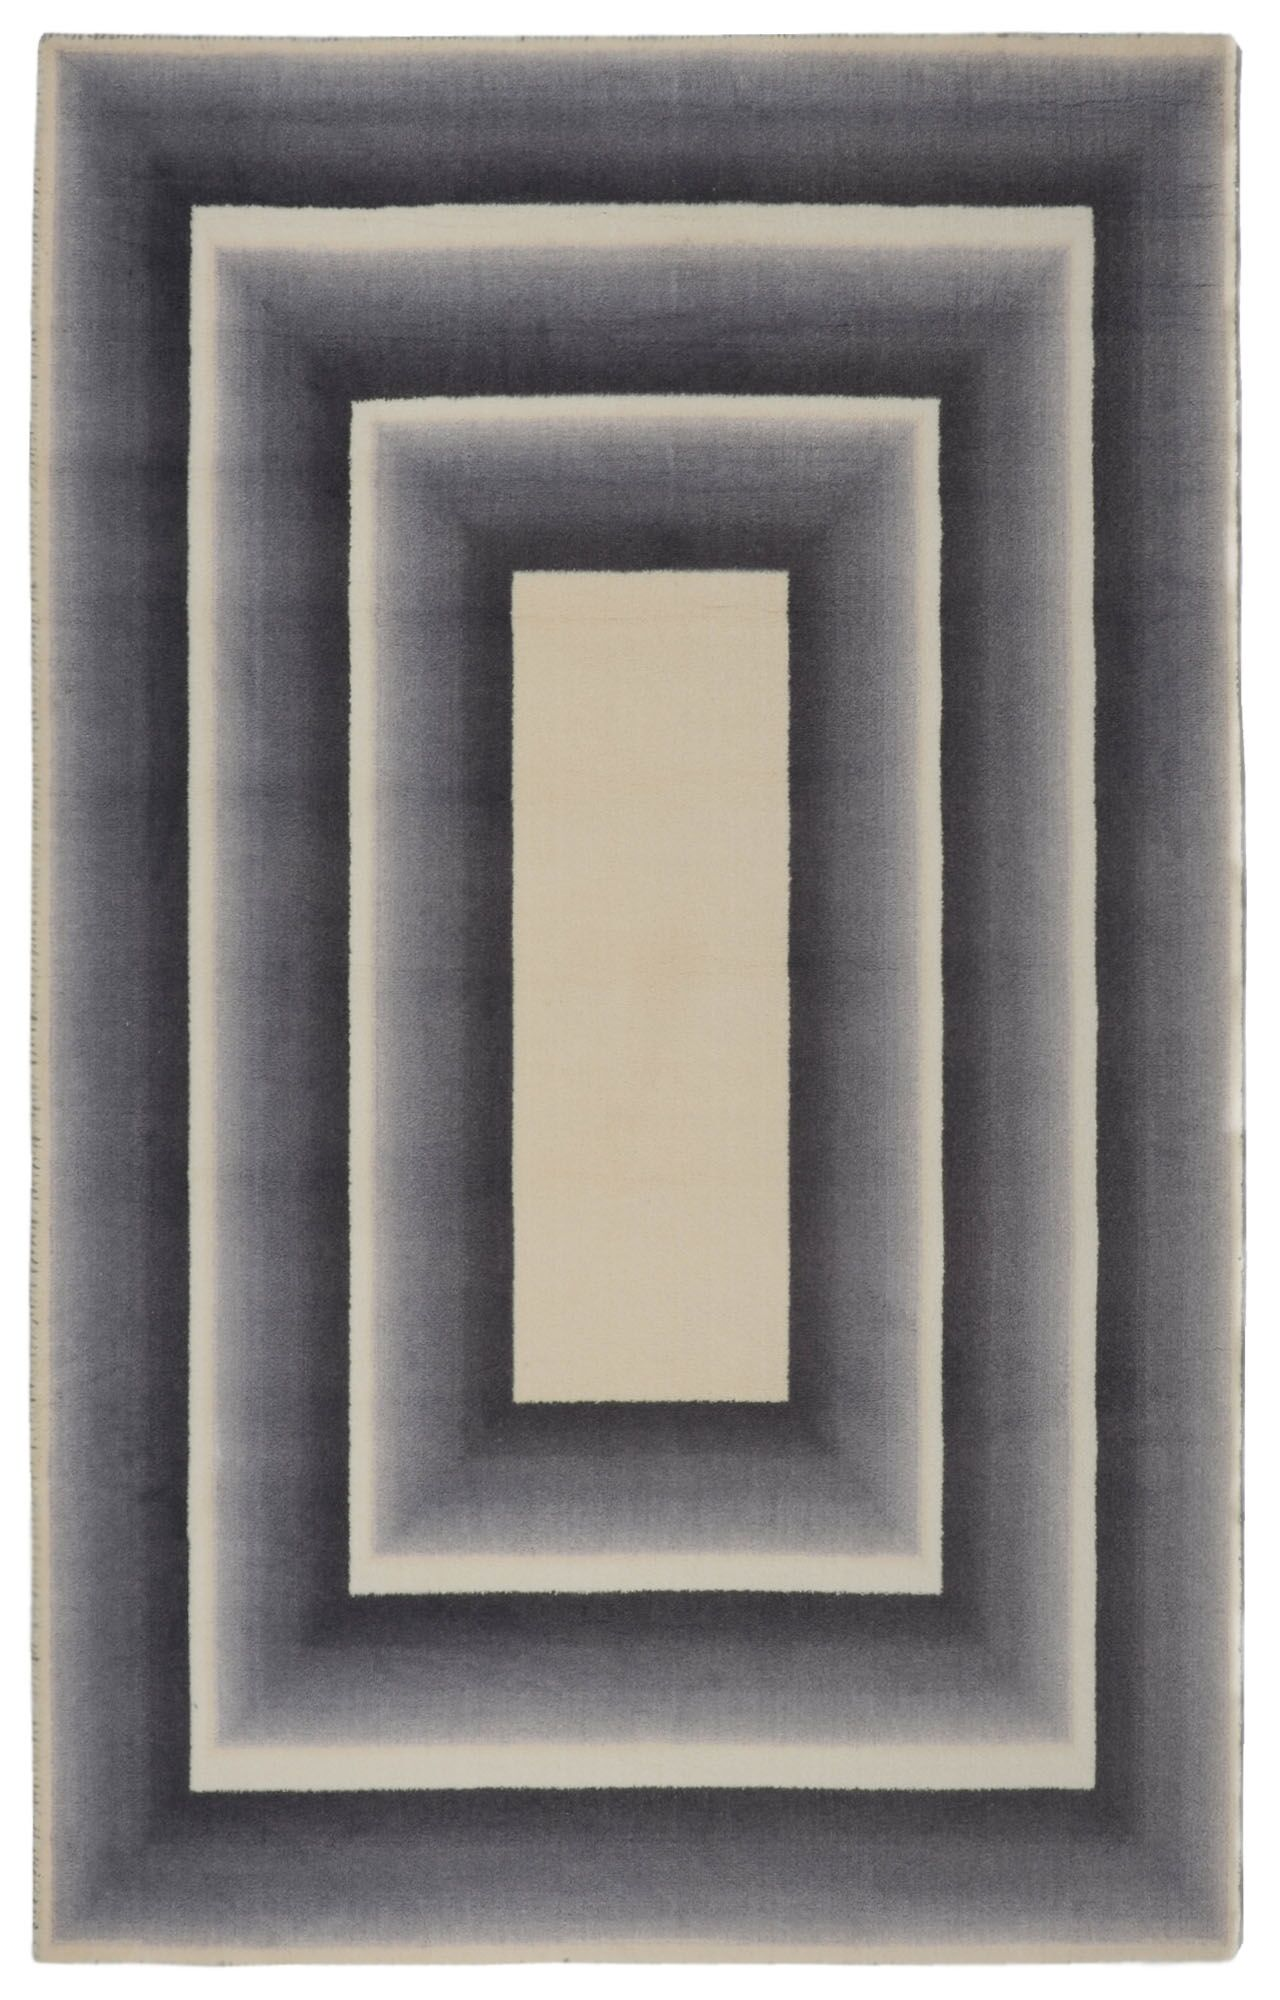 Glenmore Frame Modern Geometric Gray/Beige Area Rug Rug Size: Rectangle 5'6